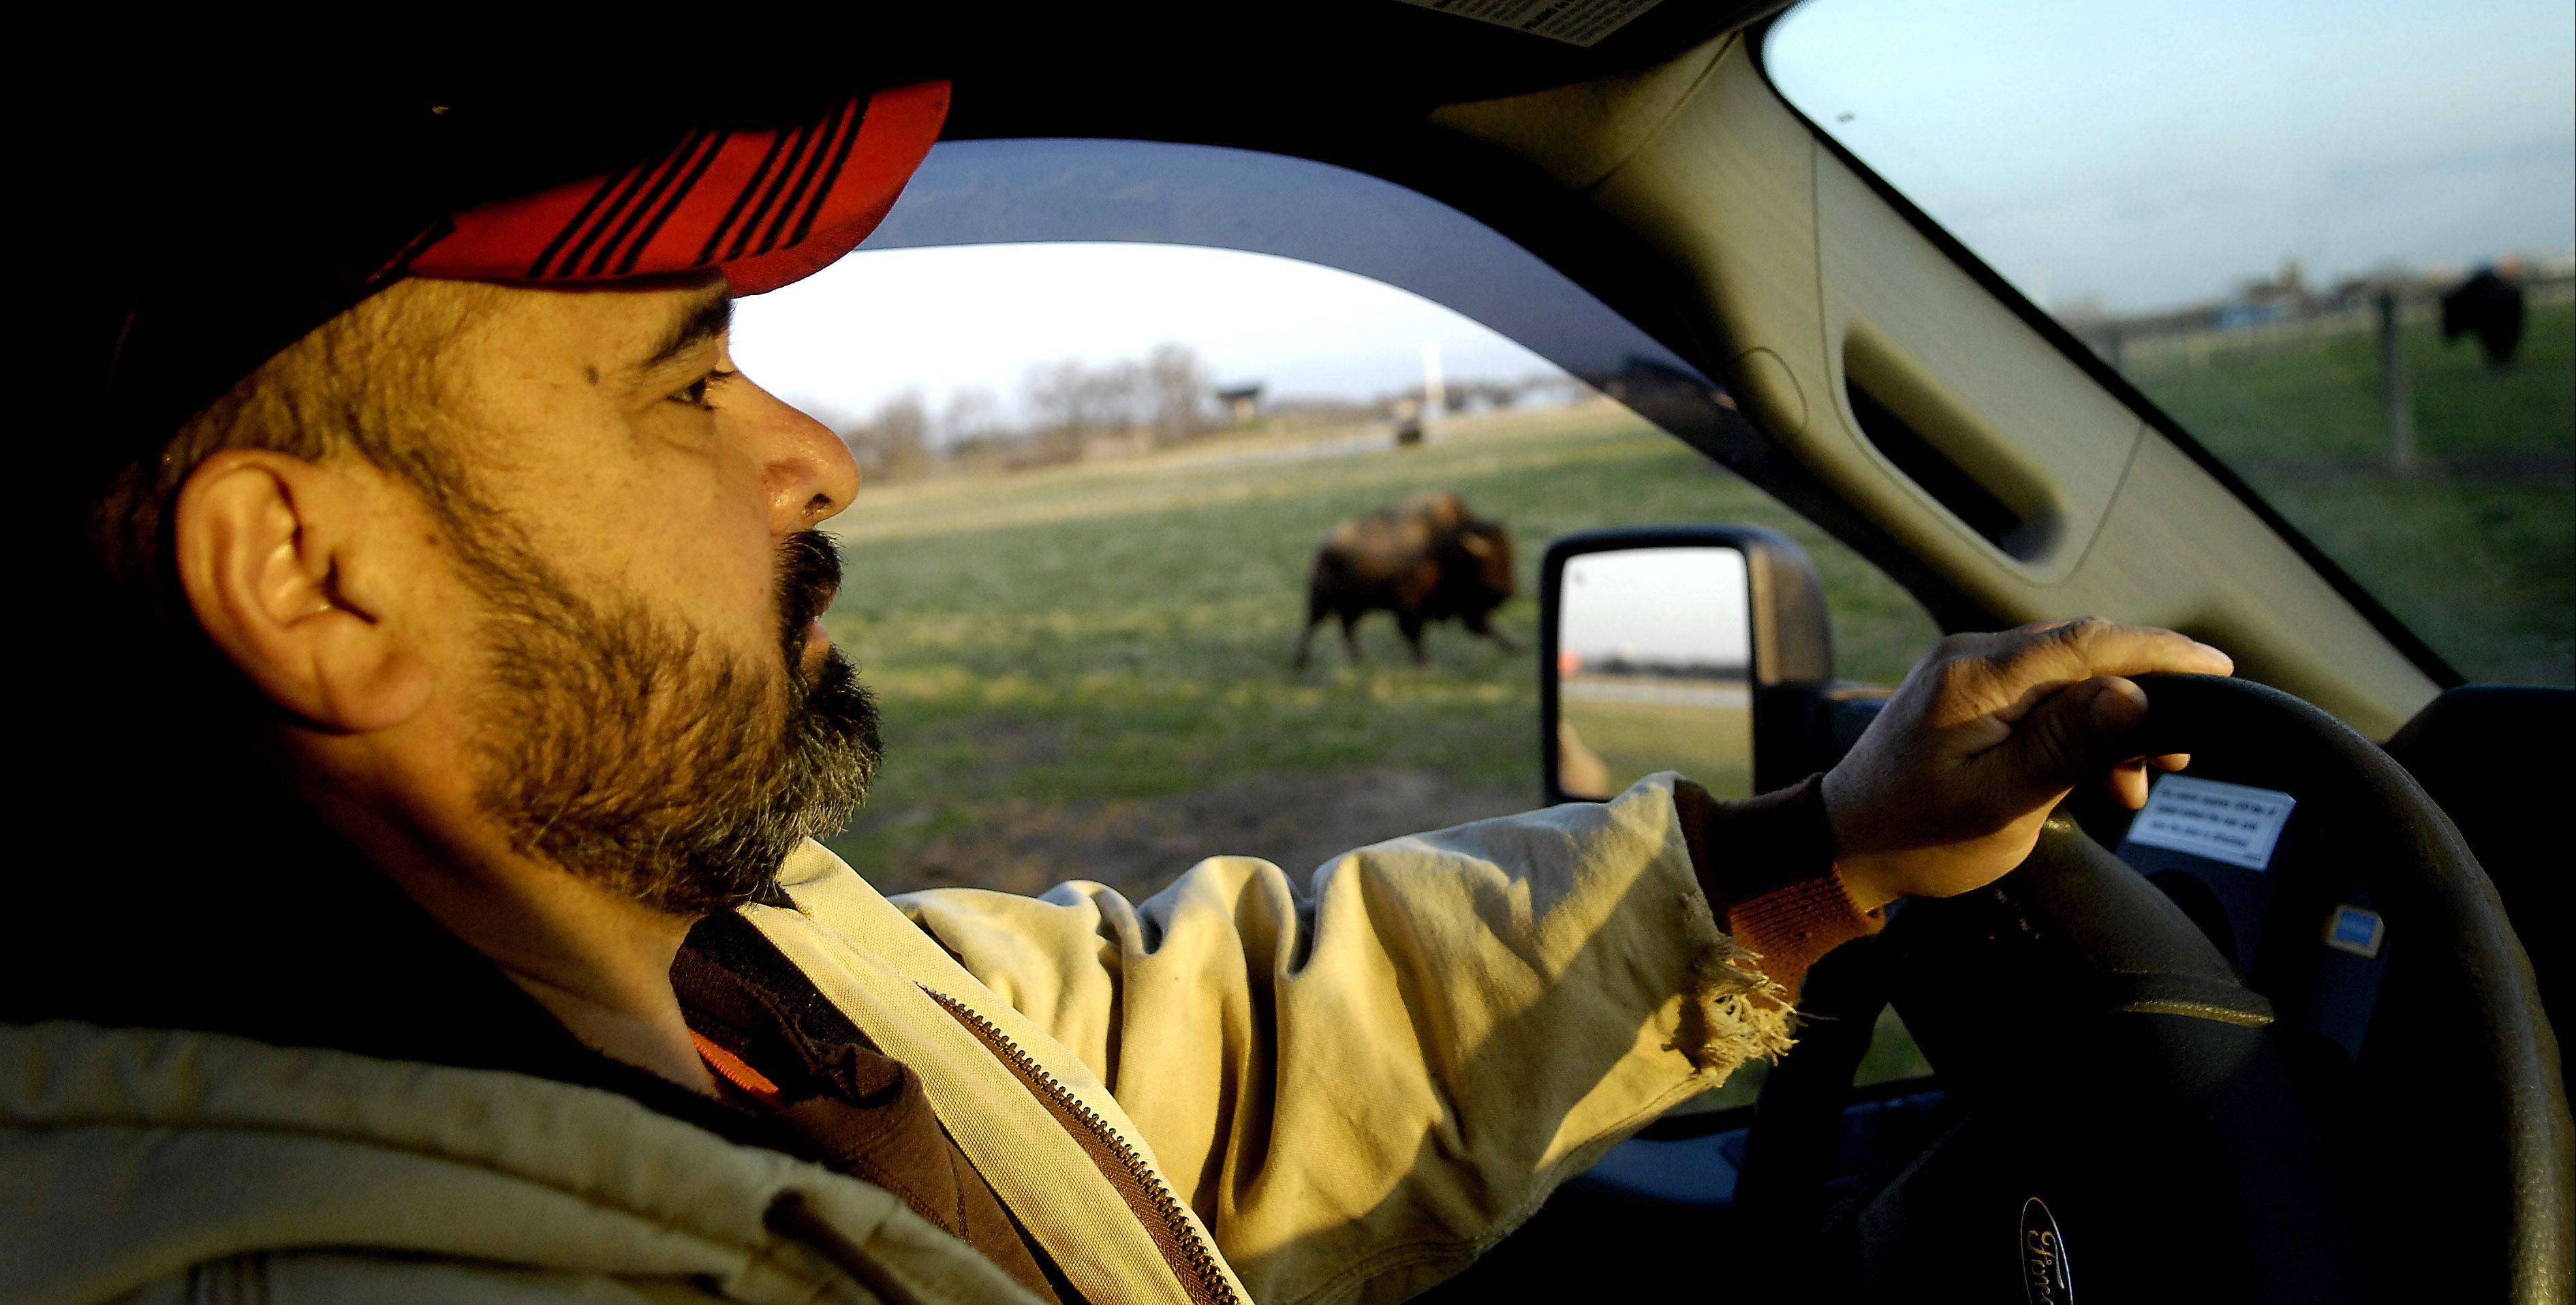 Moving Picture: Batavia man takes care of bison at Fermilab